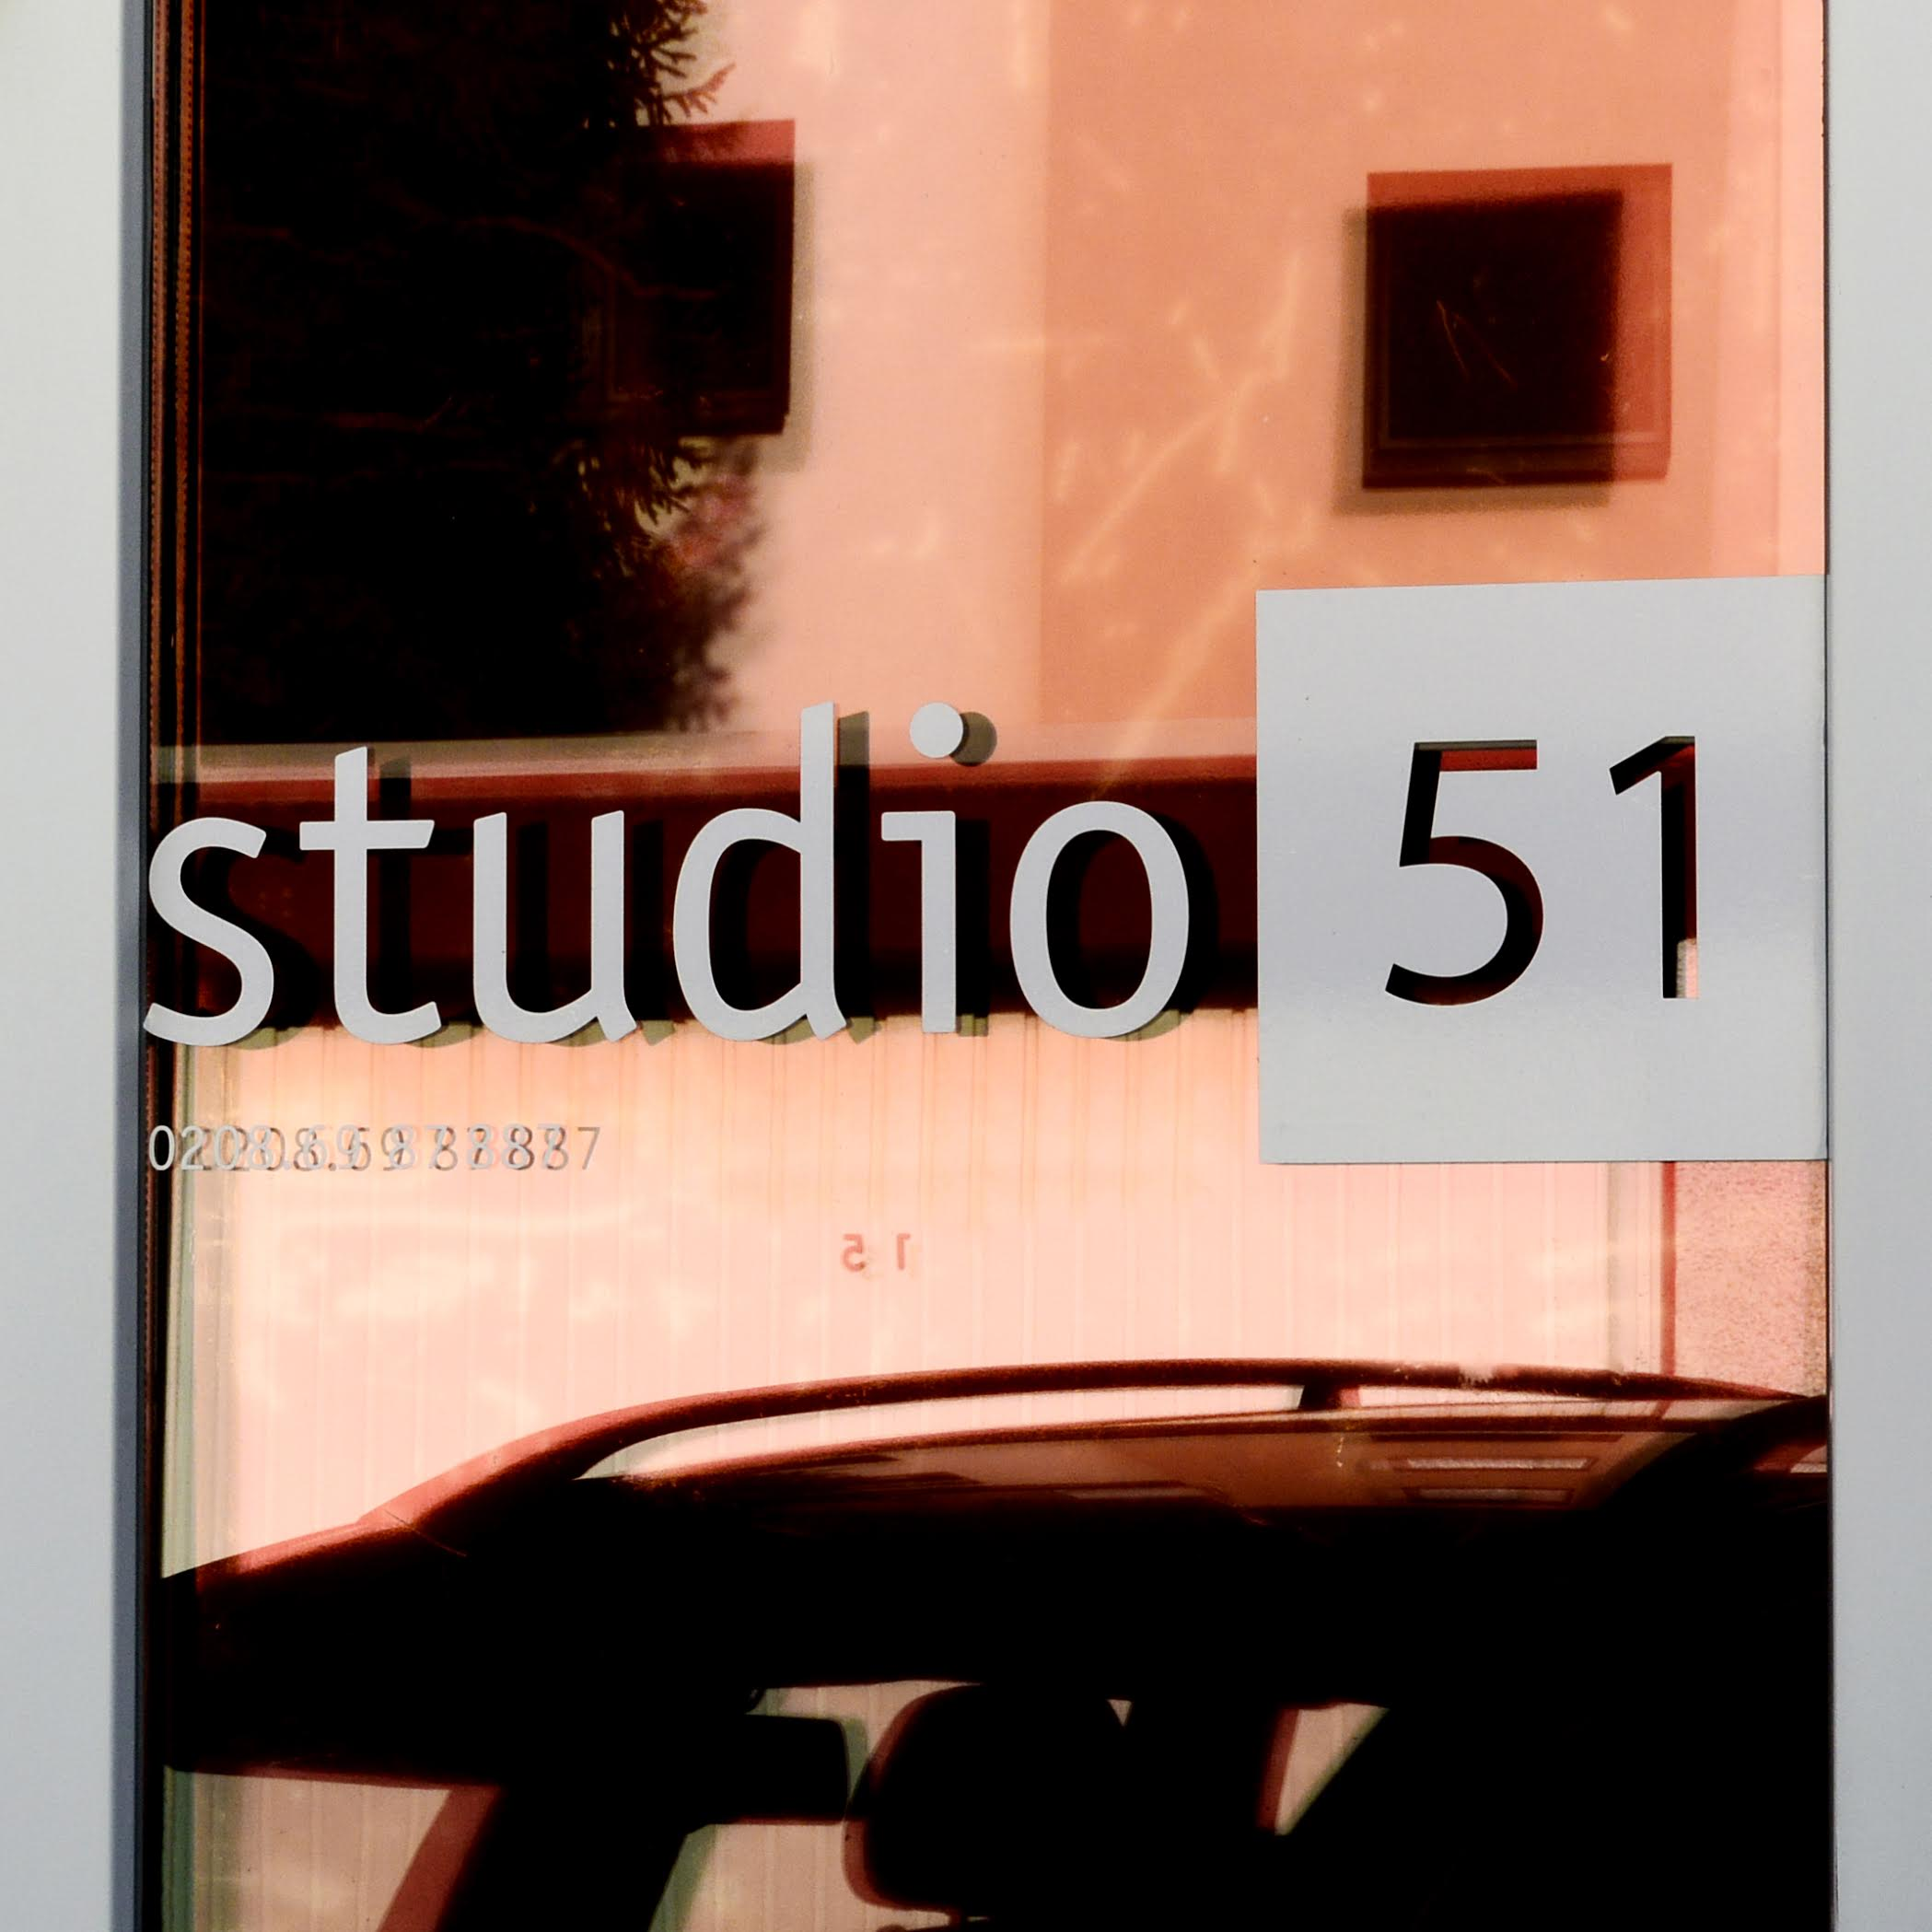 Studio51 | Indoorstudio | Fotostudio